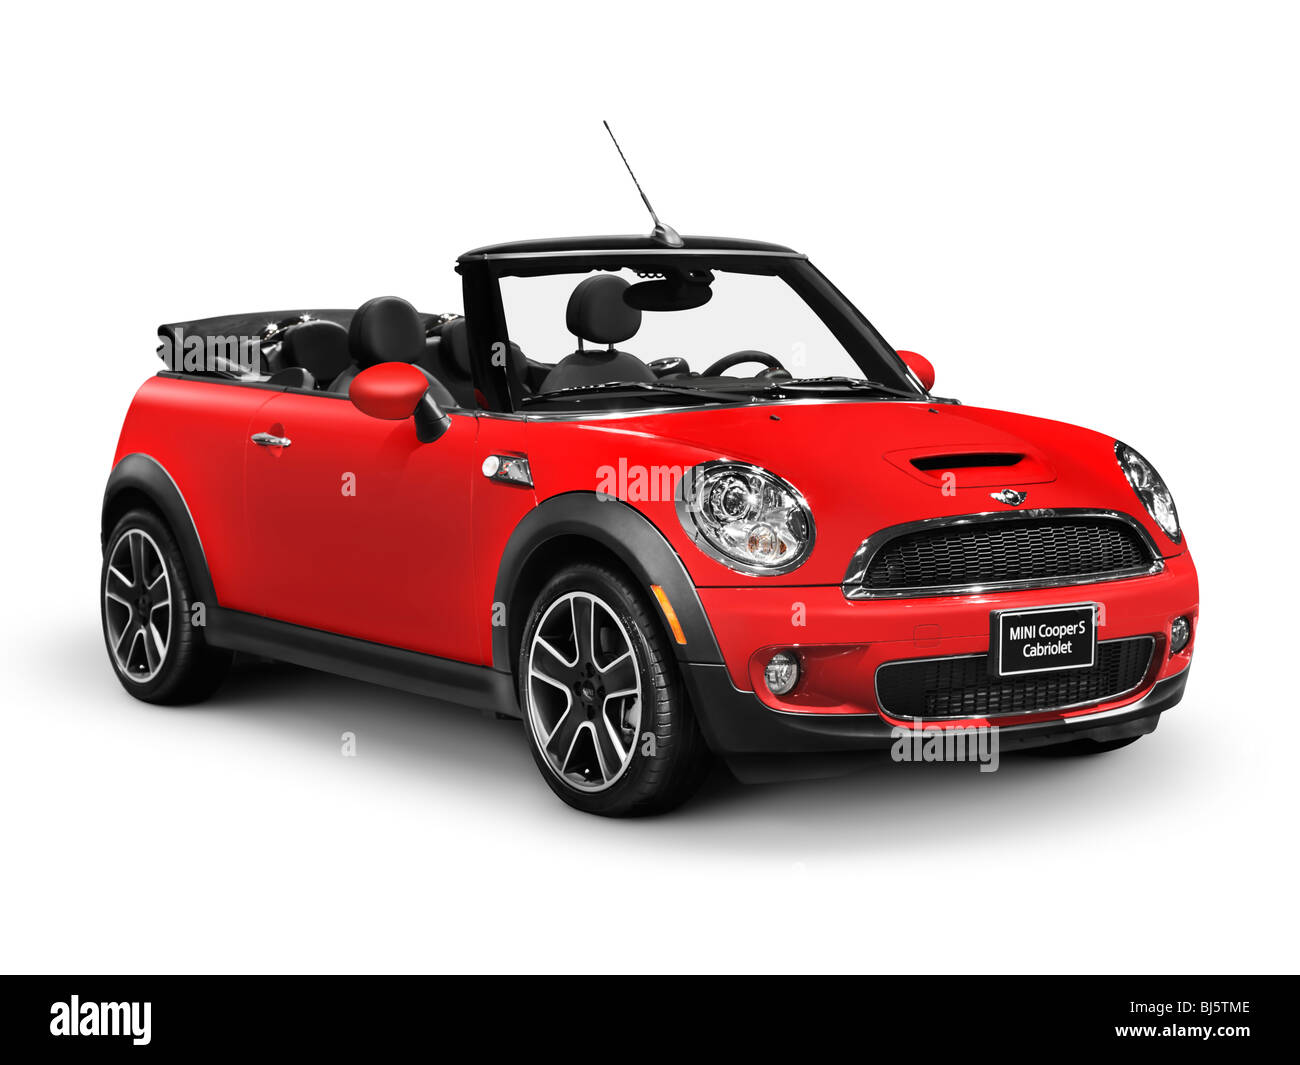 Red 2010 Mini Cooper S Convertible Car Isolated On White